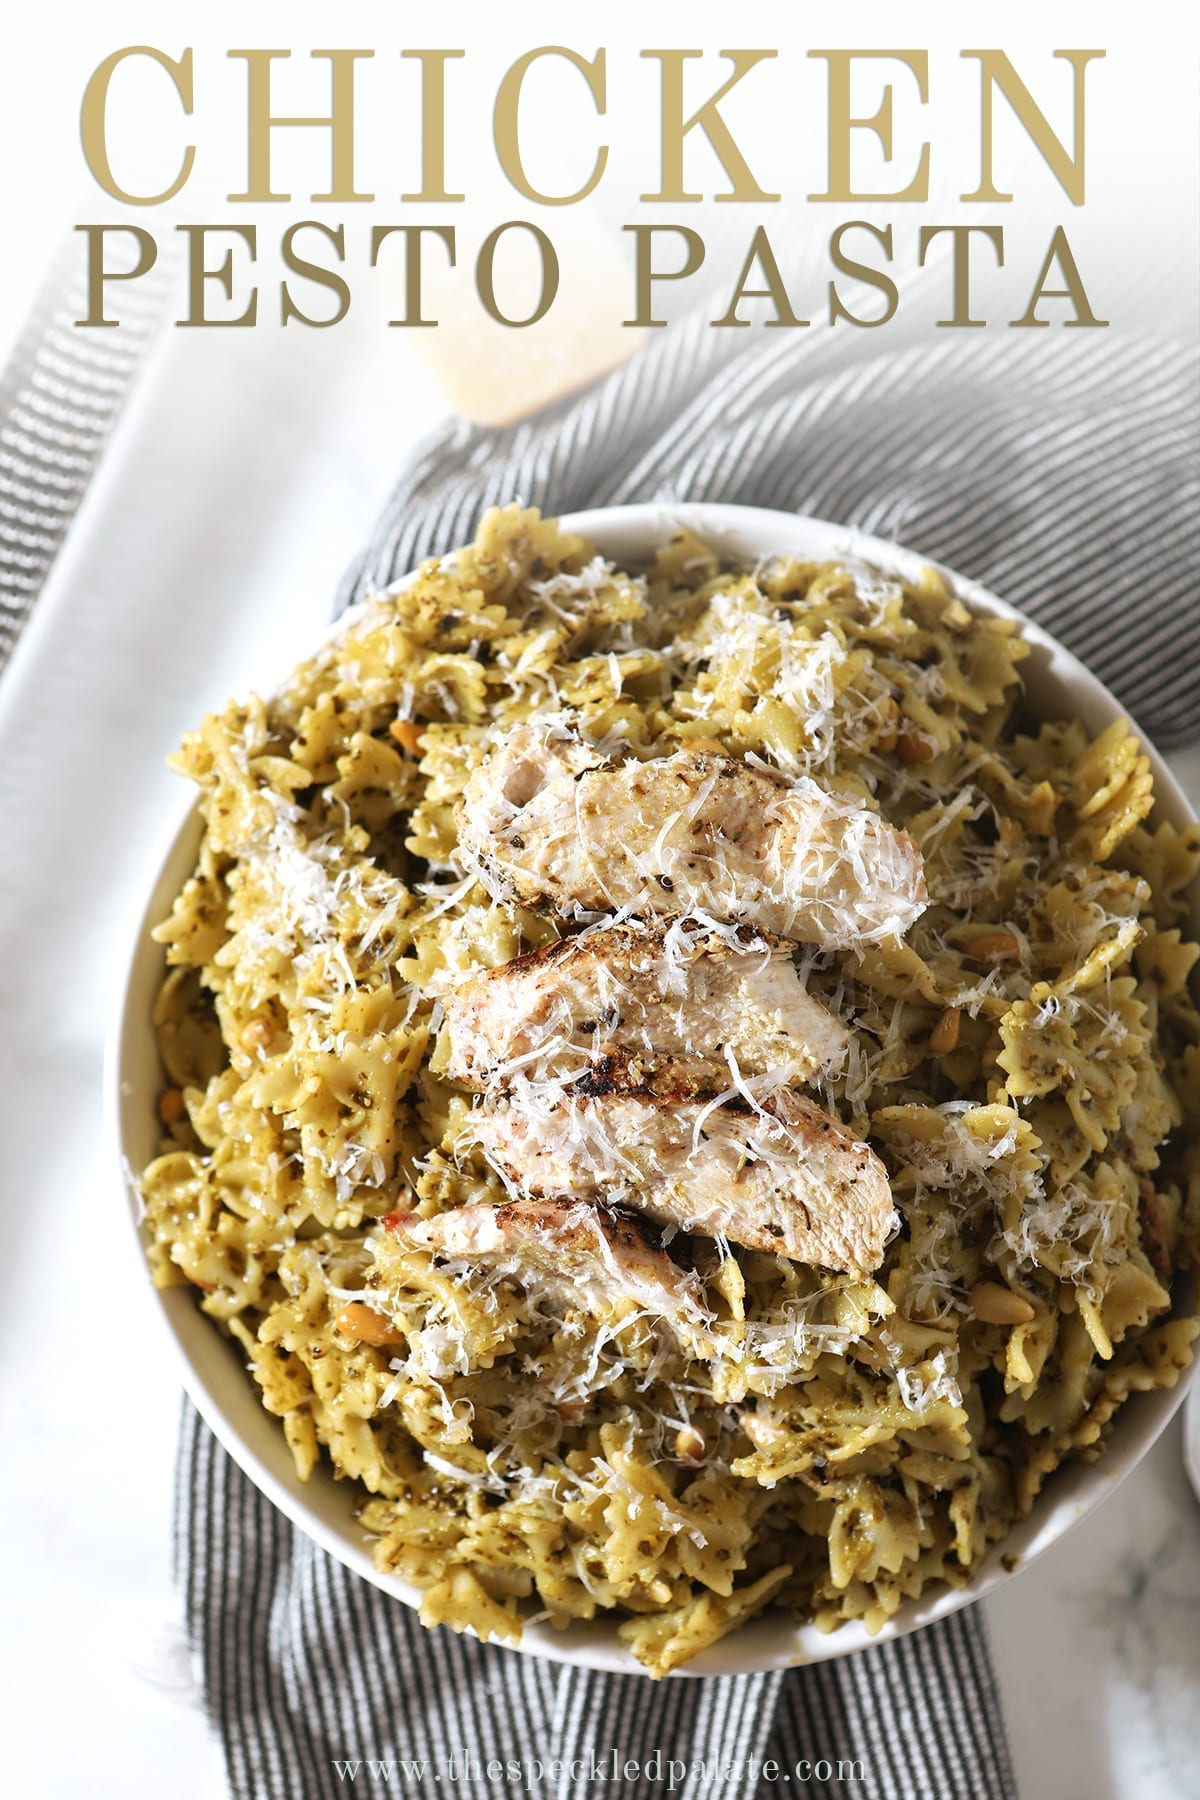 A bowl of Chicken Pesto Pasta from the side, with Pinterest text